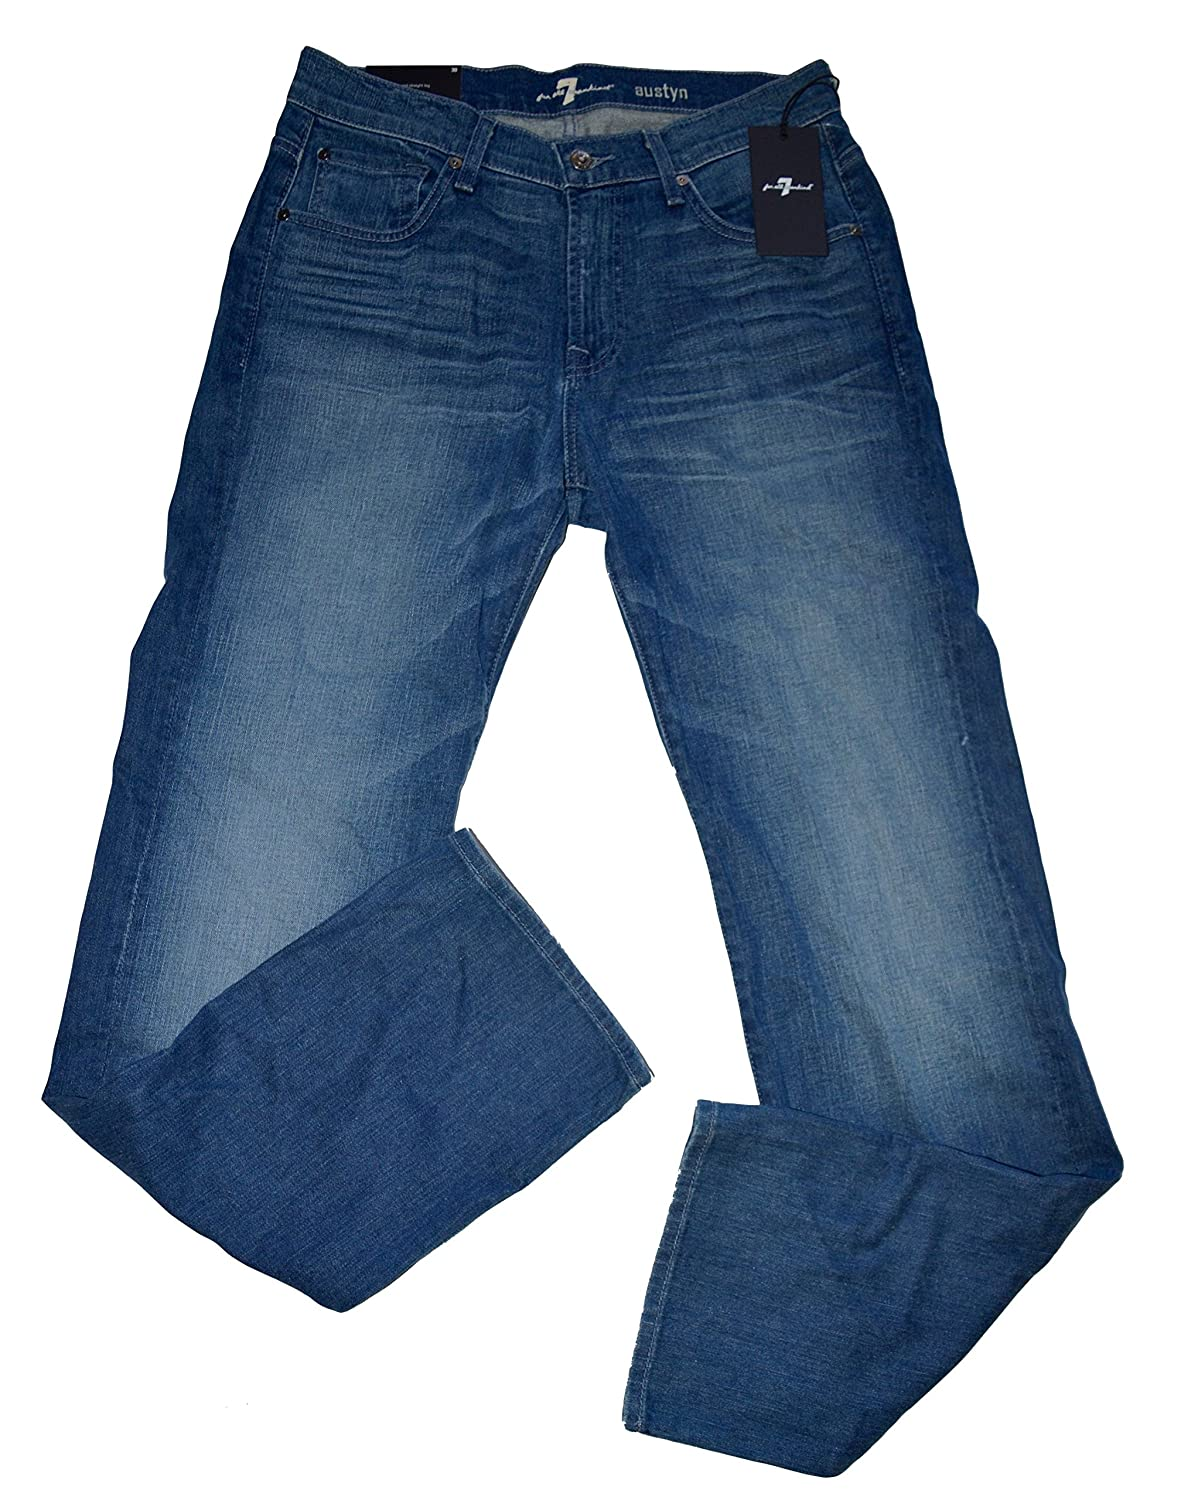 7 For All Mankind Men's Austyn Relaxed Straight Leg Blue Denim Jeans Size 30